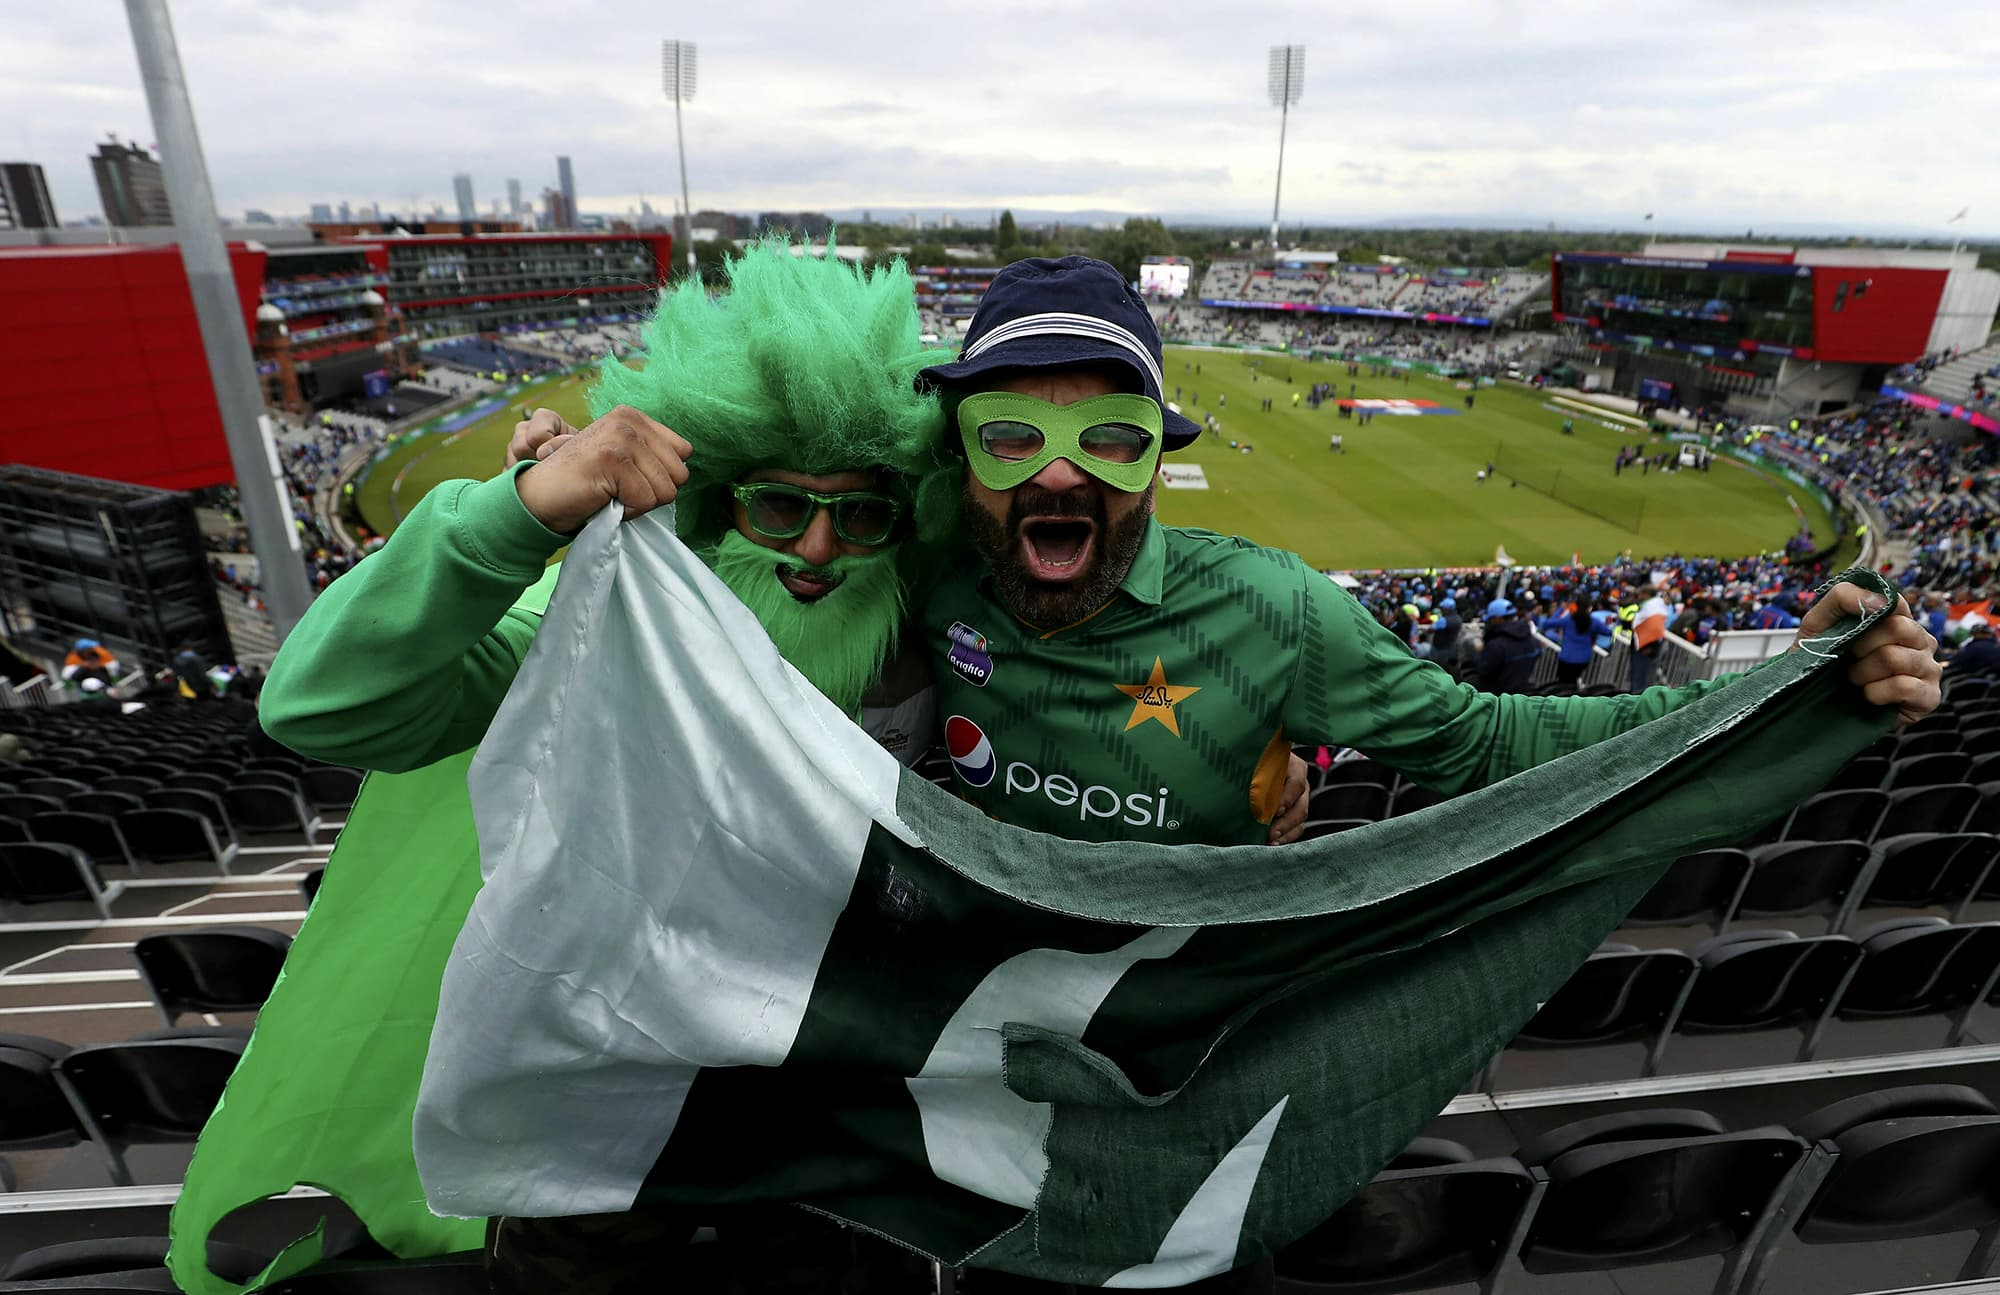 Pakistan fans pose for a photo in the stands prior to the start of play. ─ AP